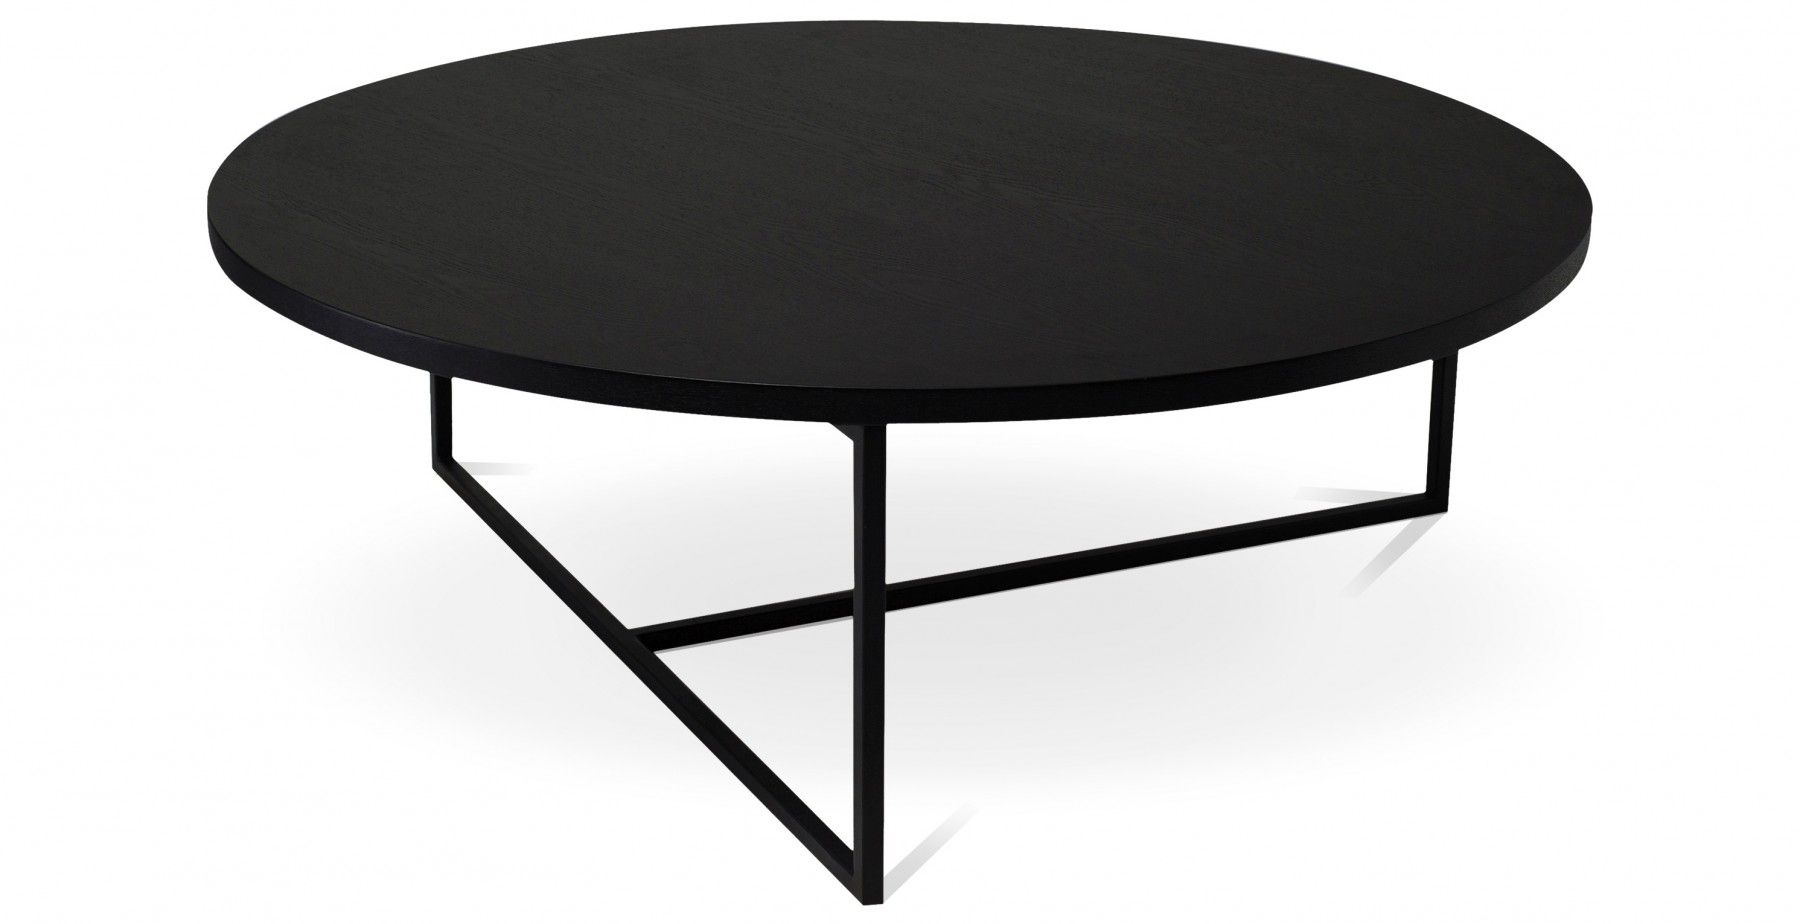 Round High Gloss Coffee Table Download Round Black Coffee Table Round Black Coffee Table N 11 Coffee Table Round Coffee Table Modern Round Black Coffee Table [ 924 x 1800 Pixel ]